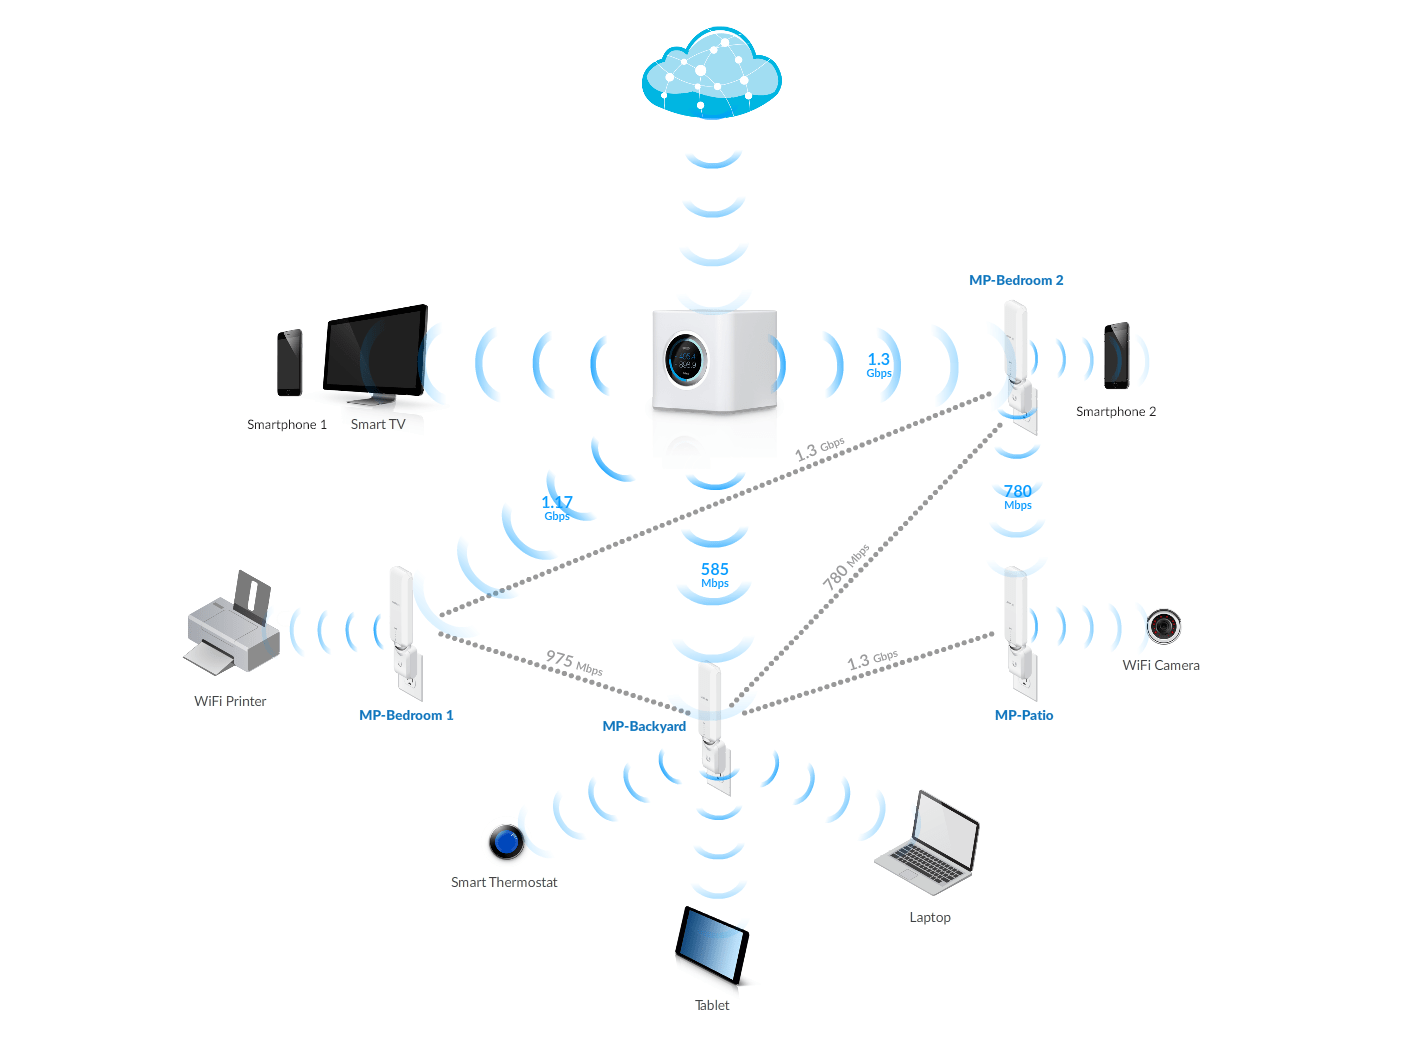 hight resolution of amplifi static image diagram 02